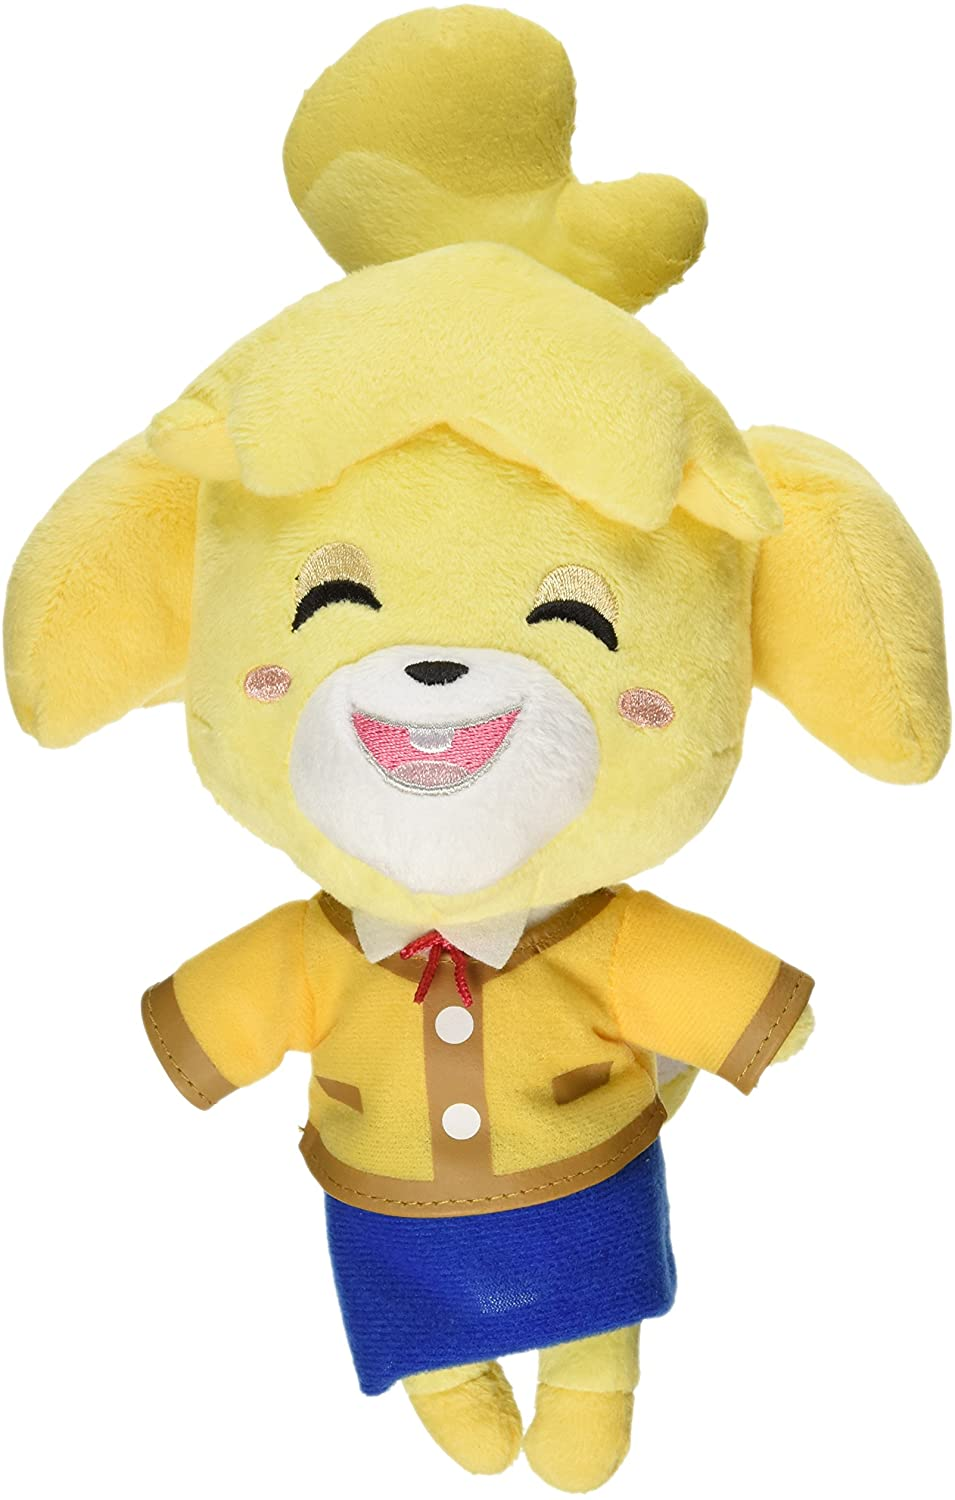 "LITTLE BUDDY ANIMAL CROSSING SMILING ISABELLE 6"" PLUSH"